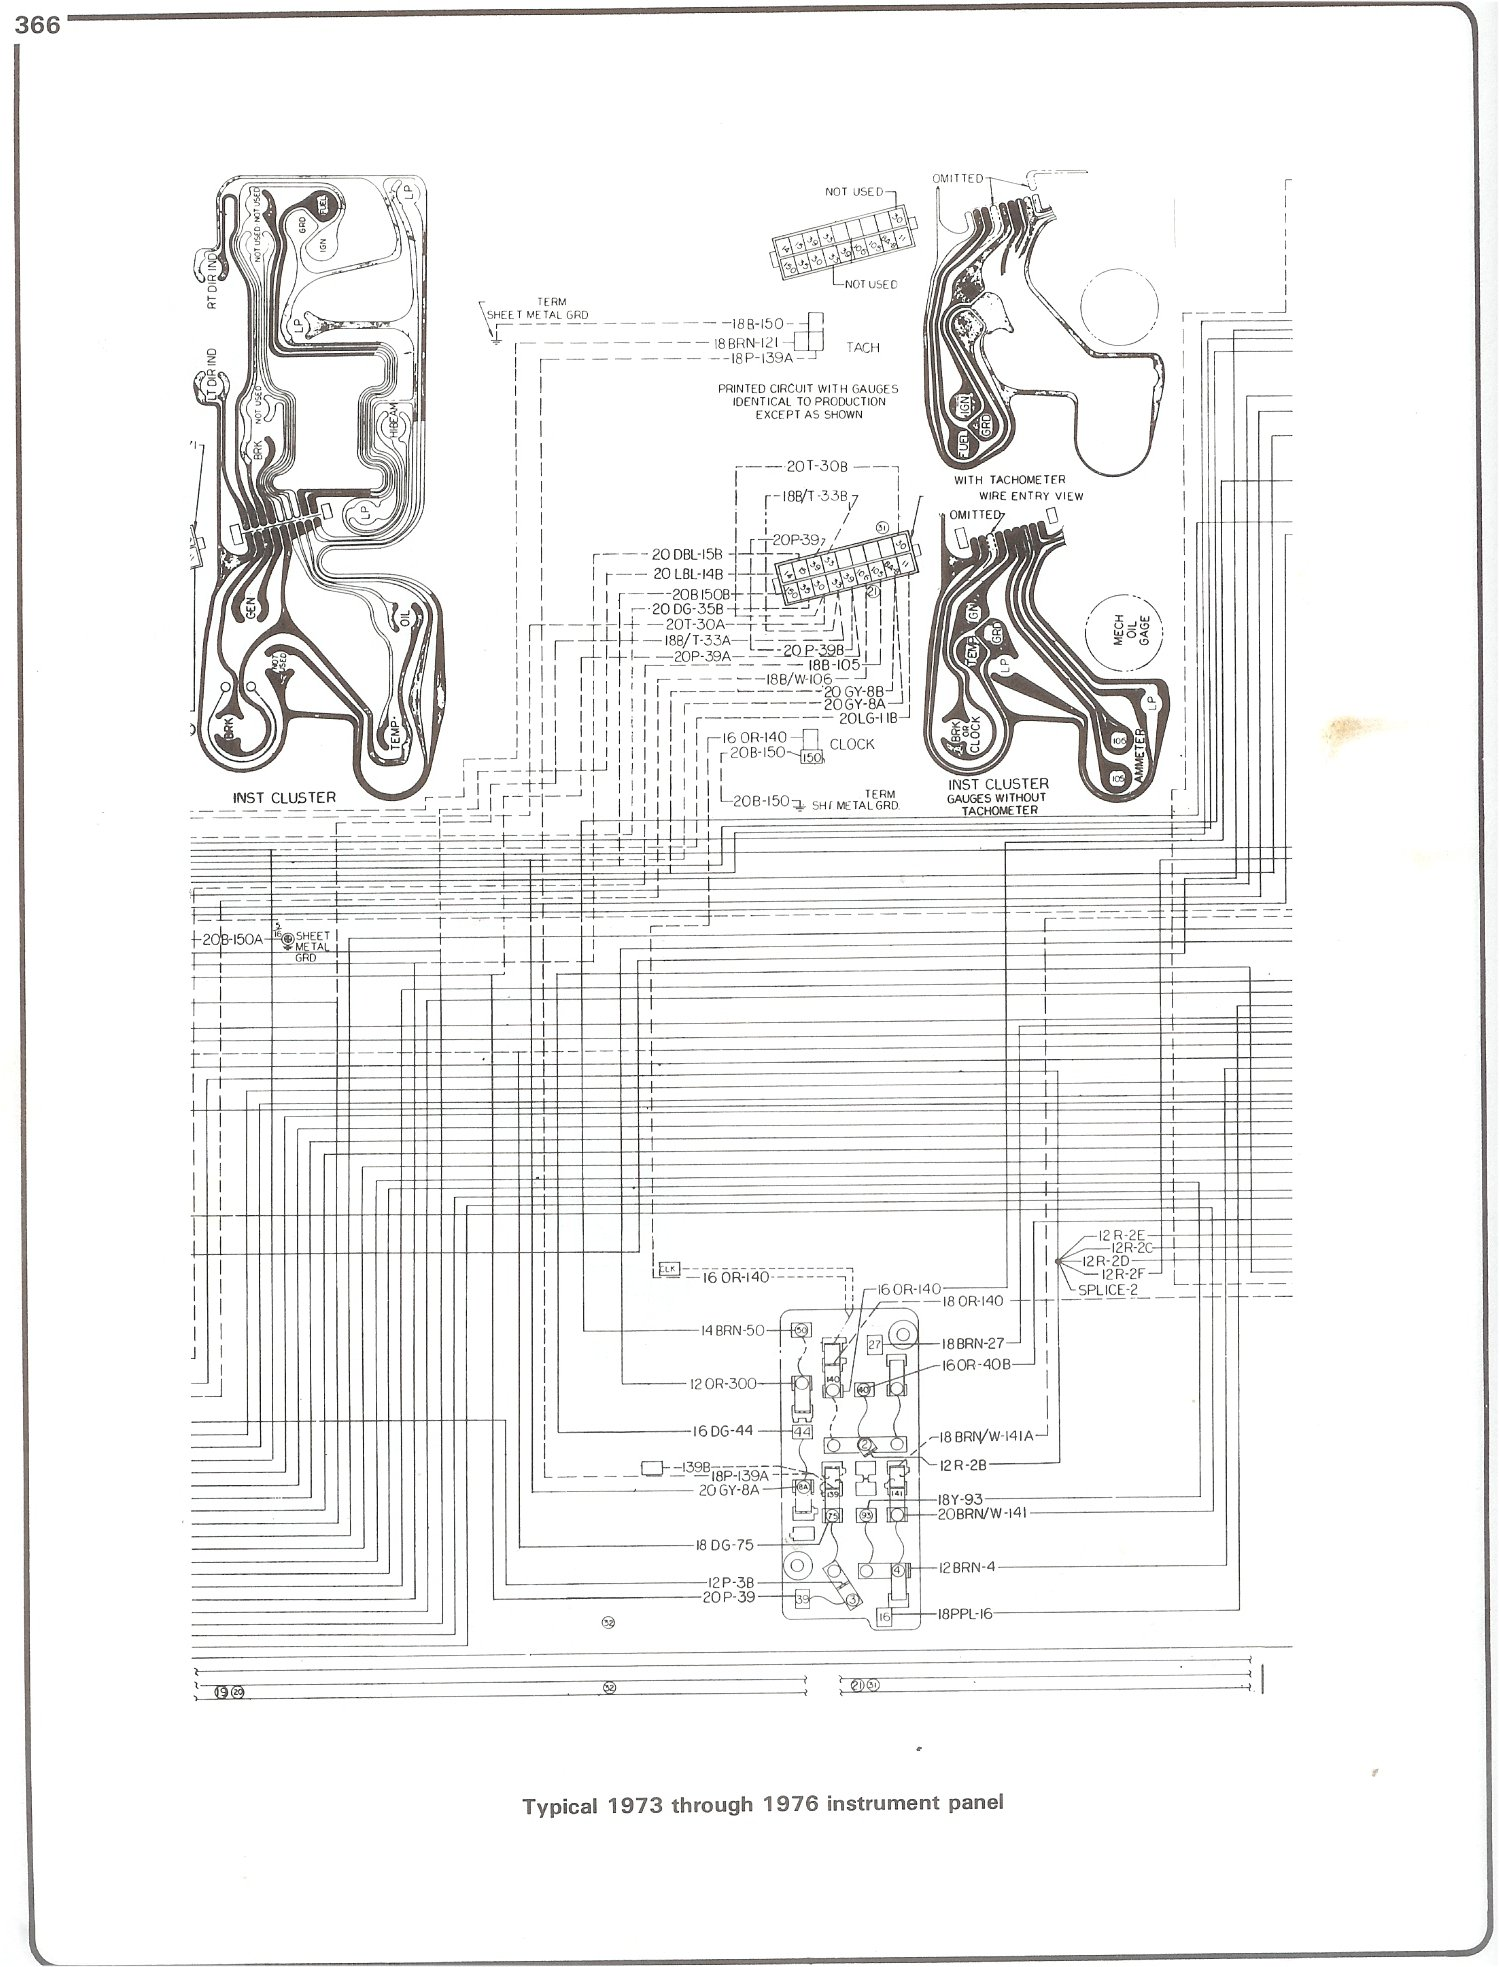 complete 73 87 wiring diagrams rh forum 73 87chevytrucks com 86 GMC Pickup Front End 93 GMC Pickup